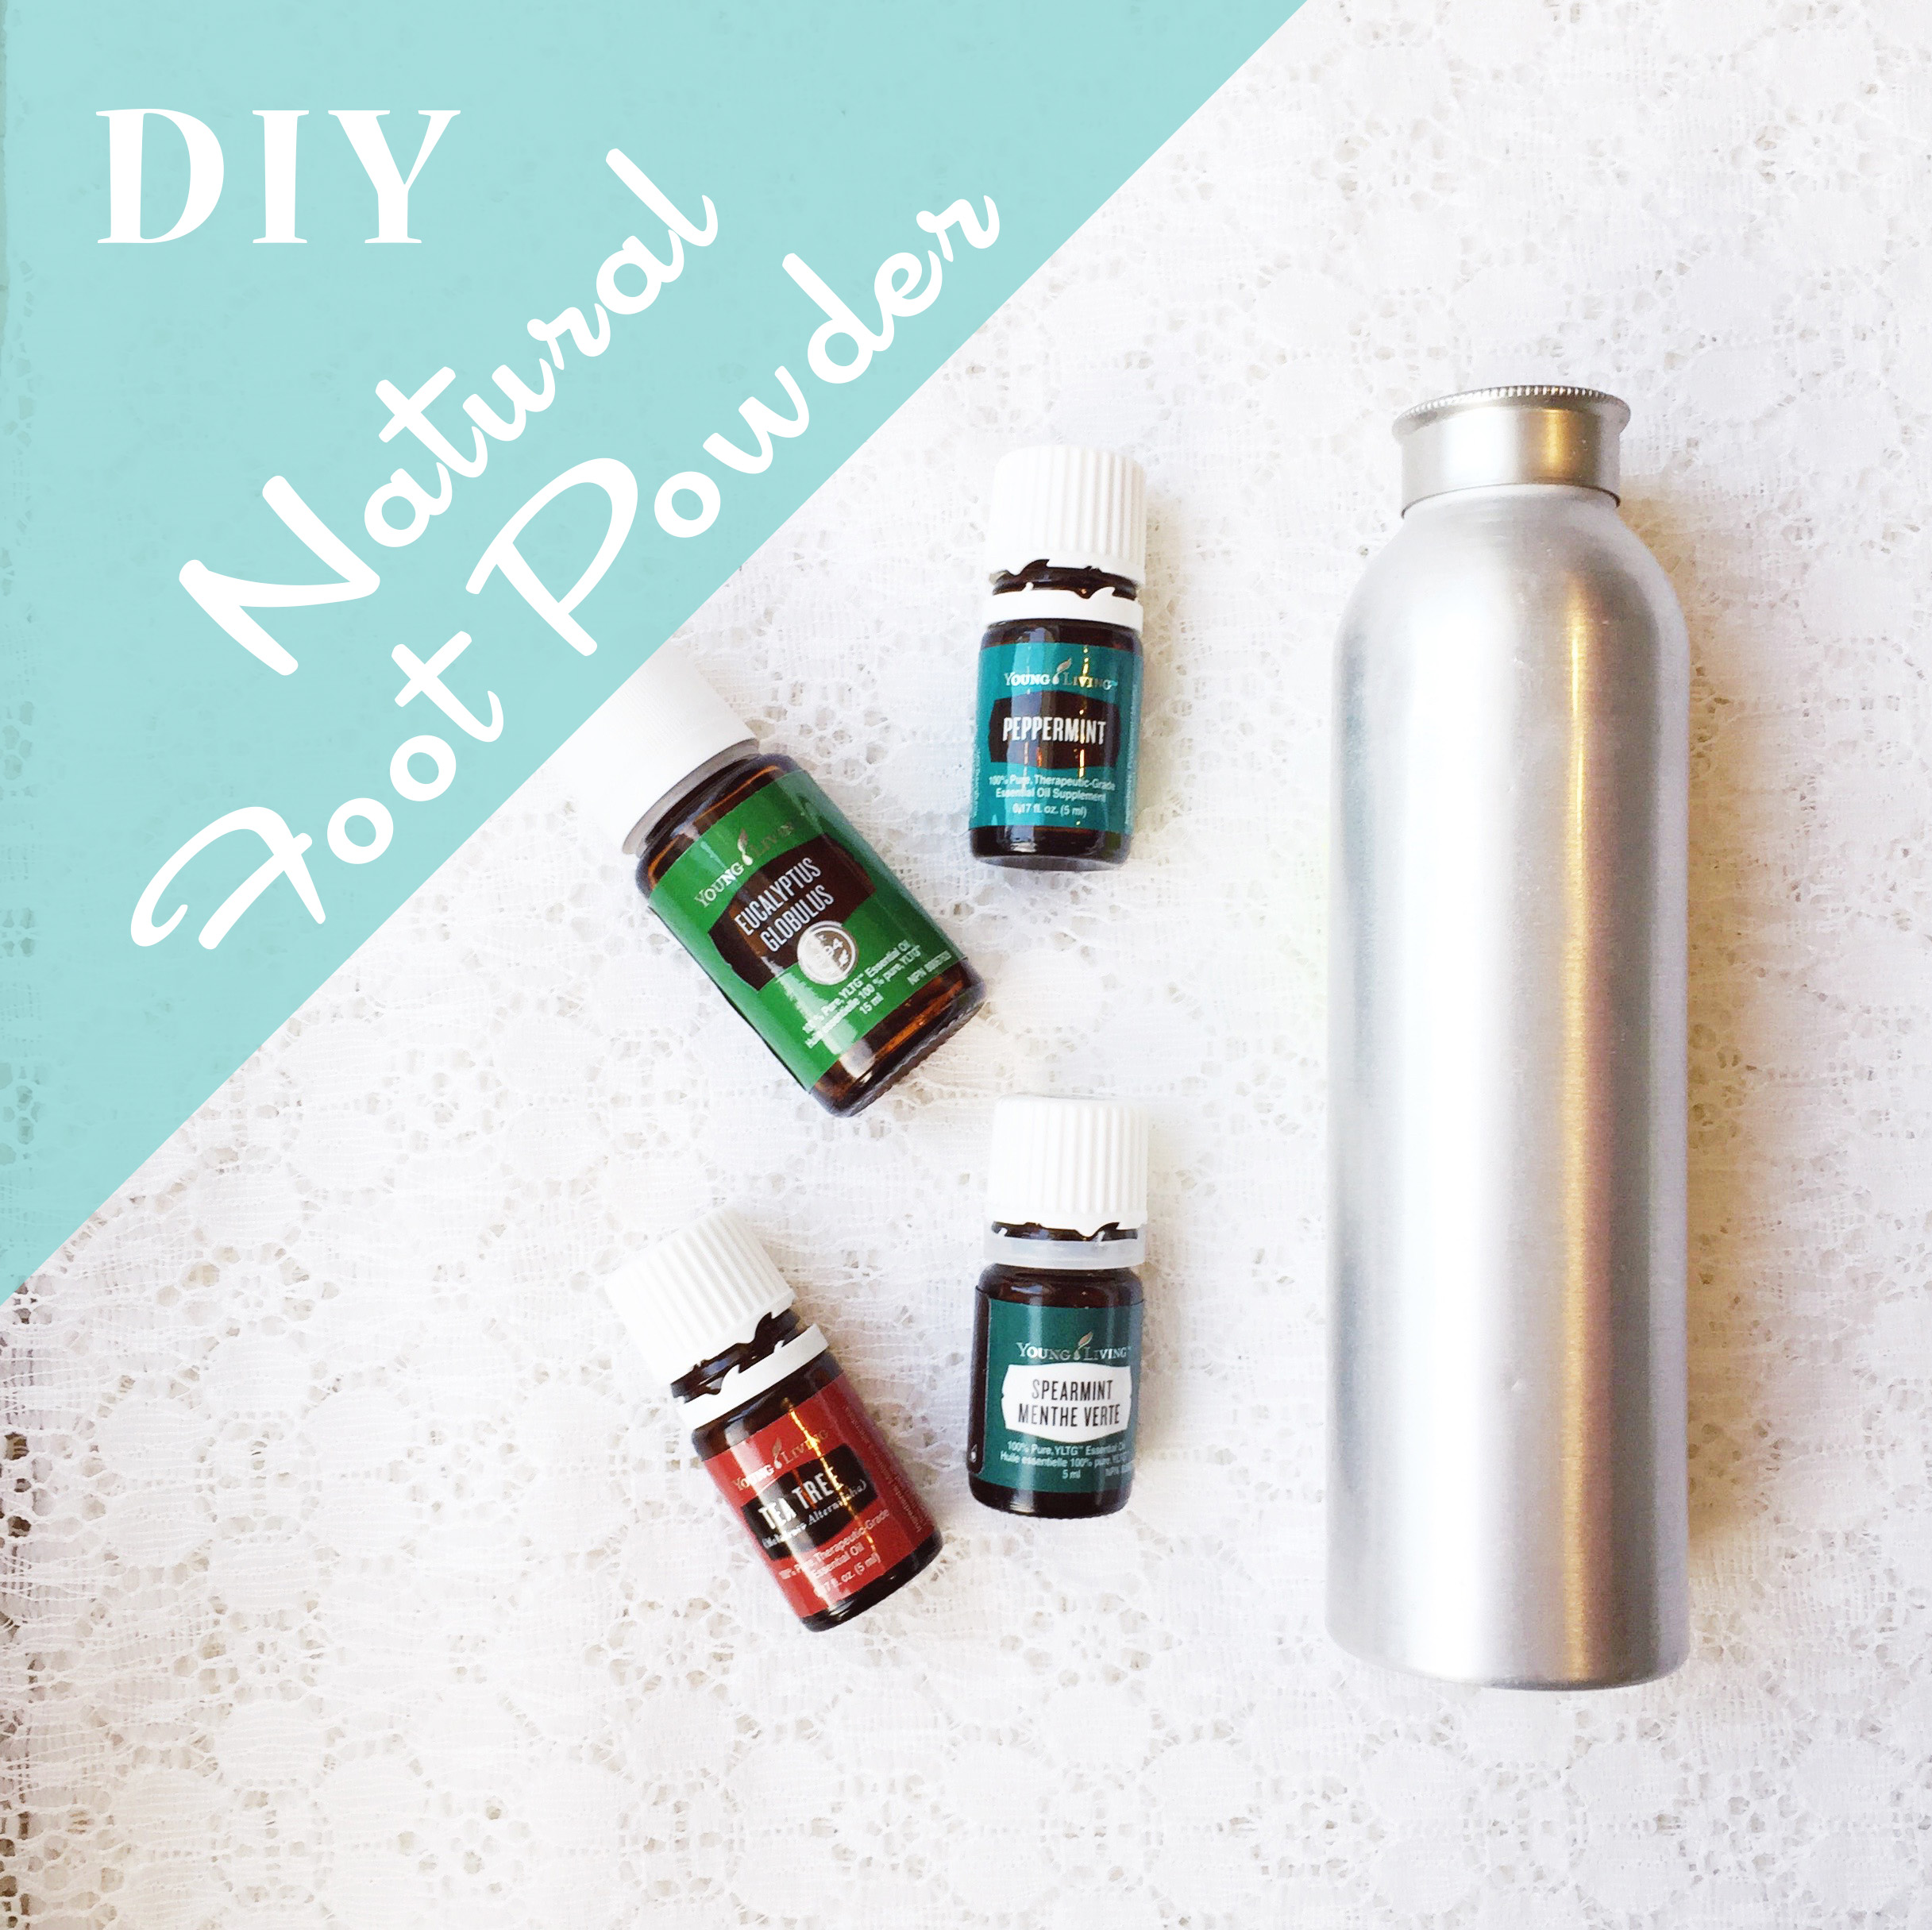 Santa's Workshop: DIY Natural Foot Powder ~ Essential Oils ~ by Bubblegum Sass